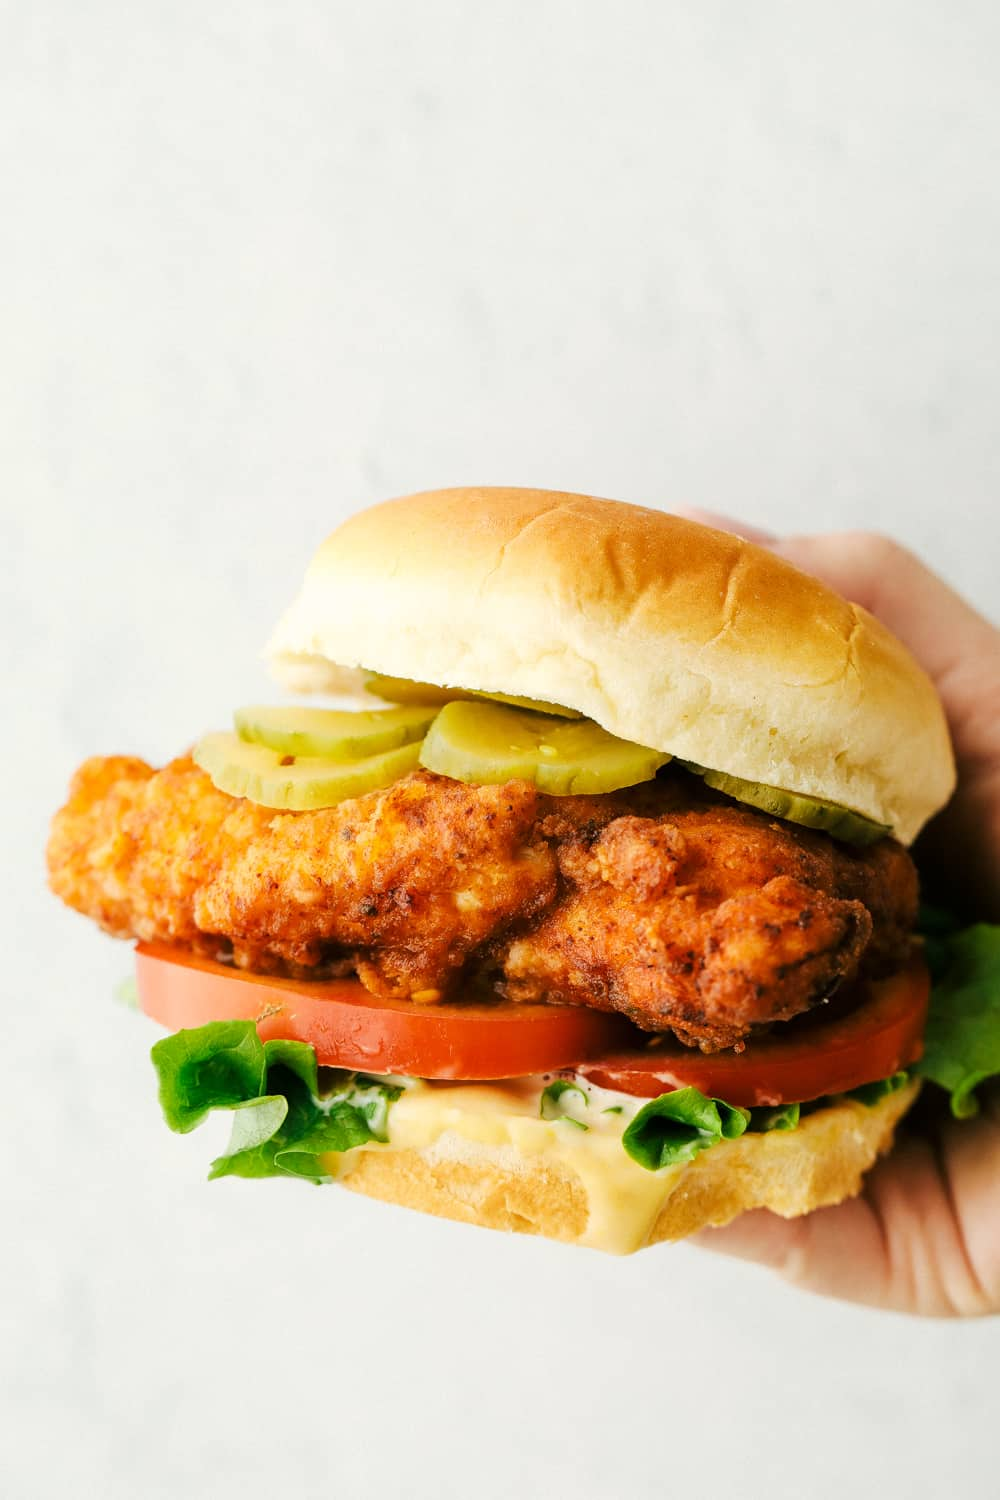 Holding a chicken sandwich with pickles, lettuce and tomatoes.